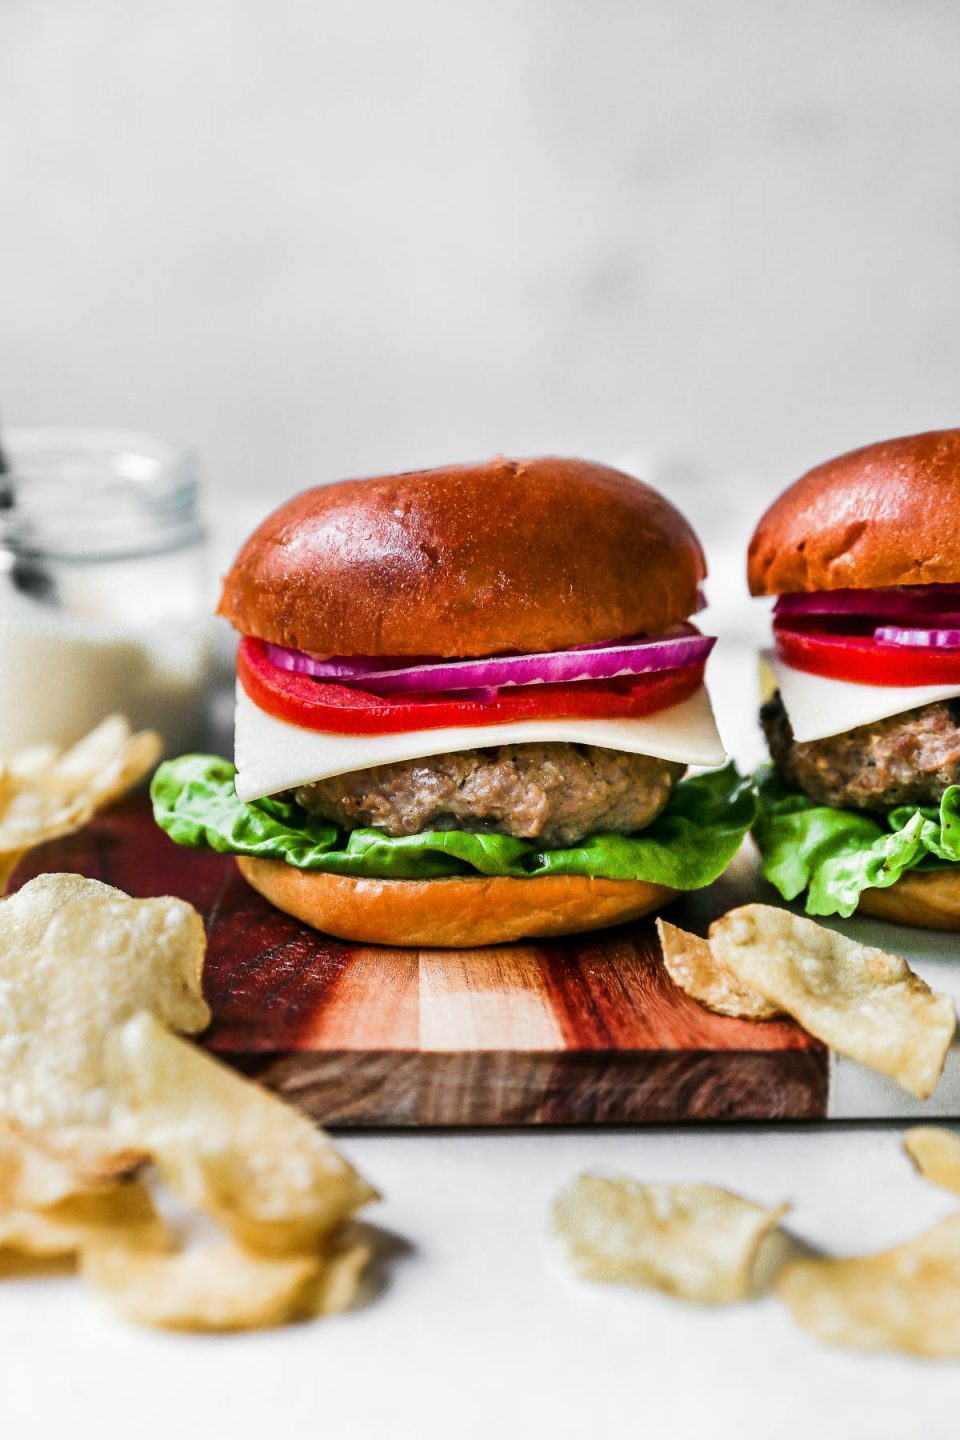 2 Turkey burgers sitting on a wooden board. The turkey burgers are topped with lettuce, cheese, tomato & red onion. The turkey burgers are on golden hamburger buns, surrounded by potato chips.